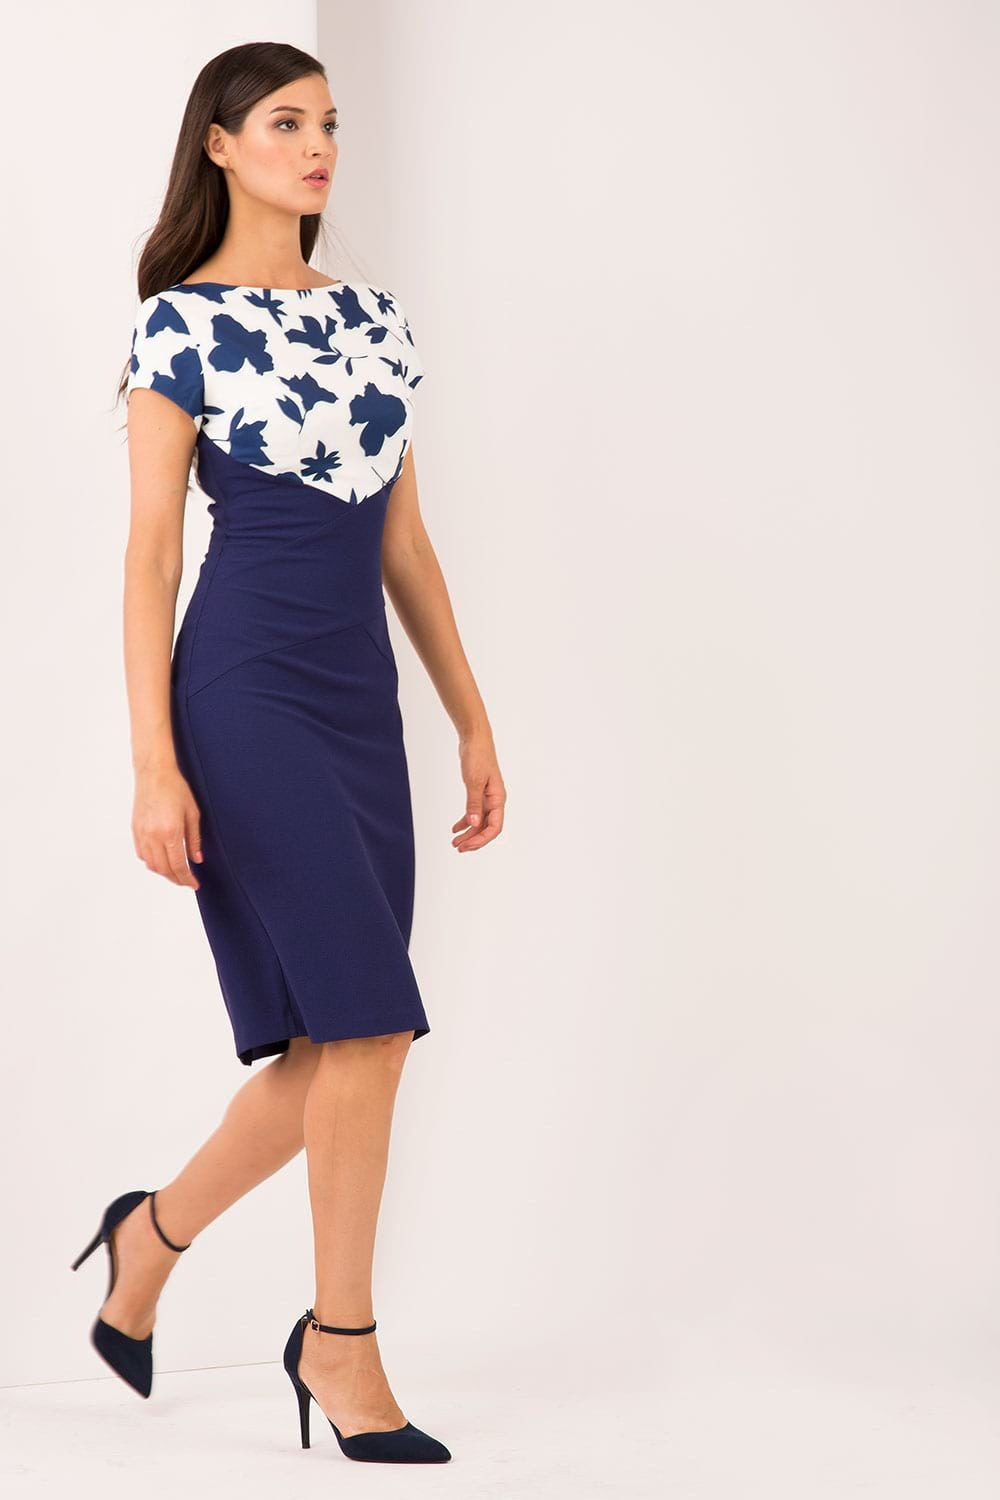 Hybrid Fashion 1320 Roberta Floral Pencil Dress